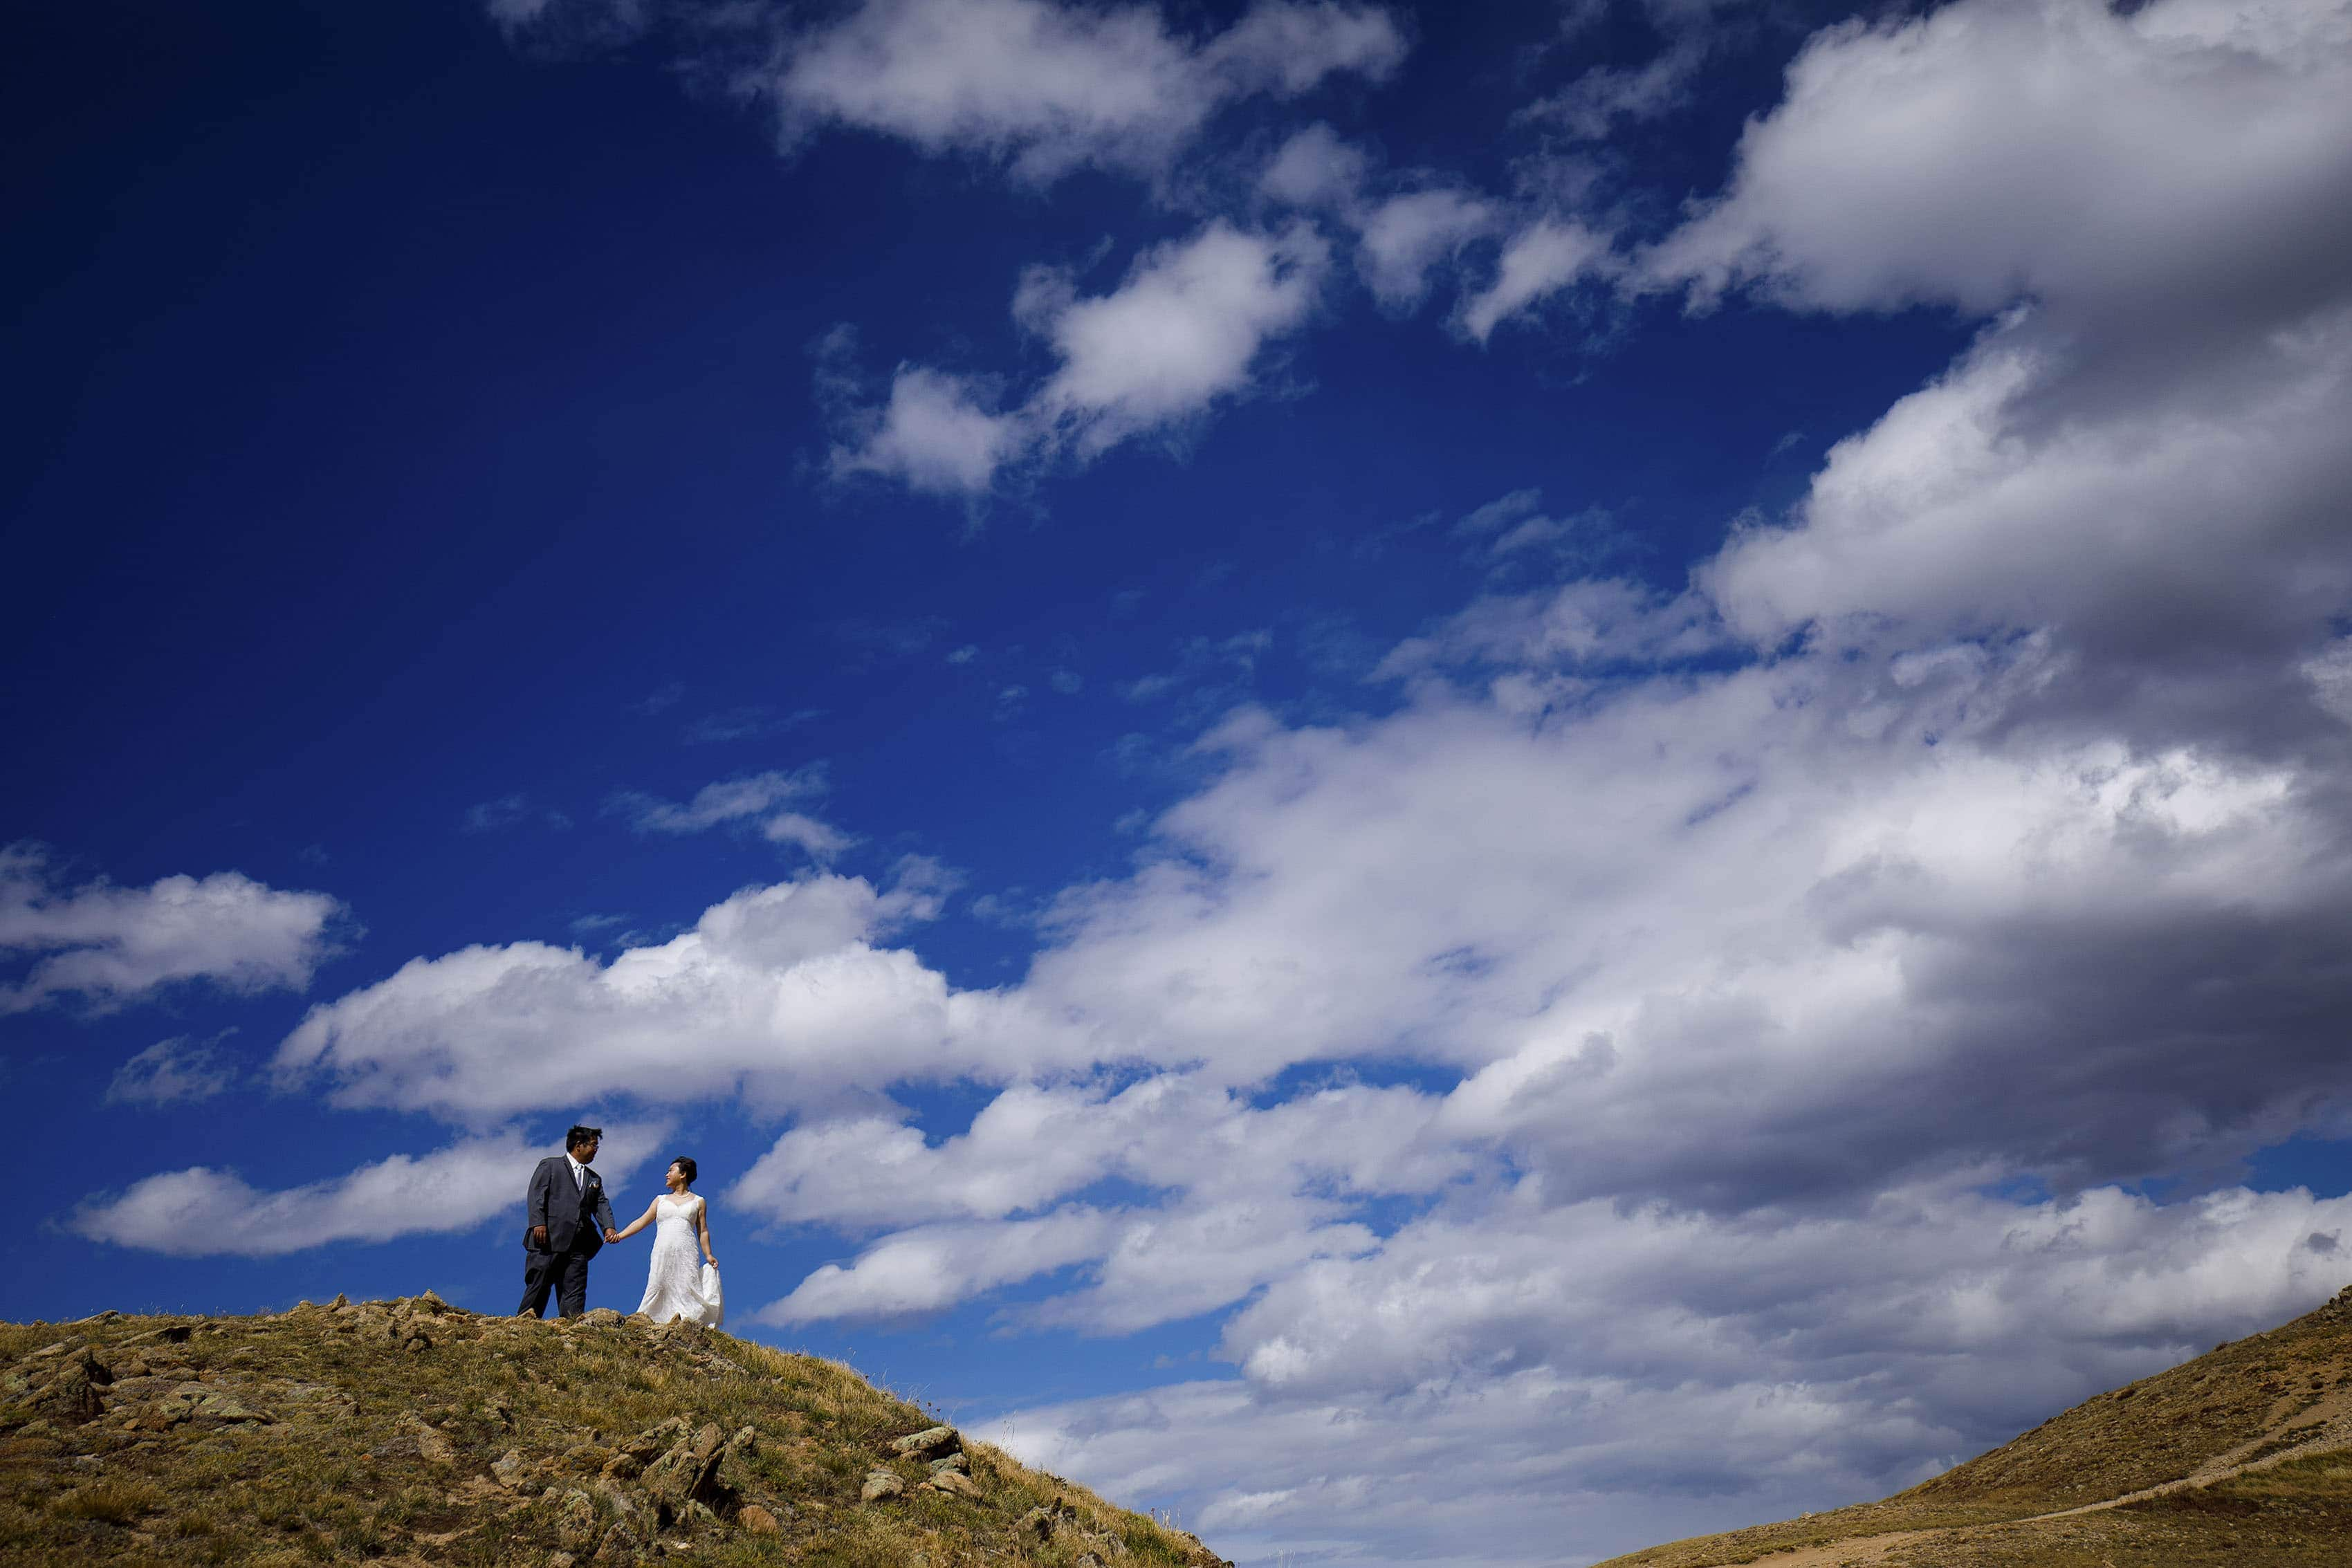 The newlyweds walk together on Loveland Pass